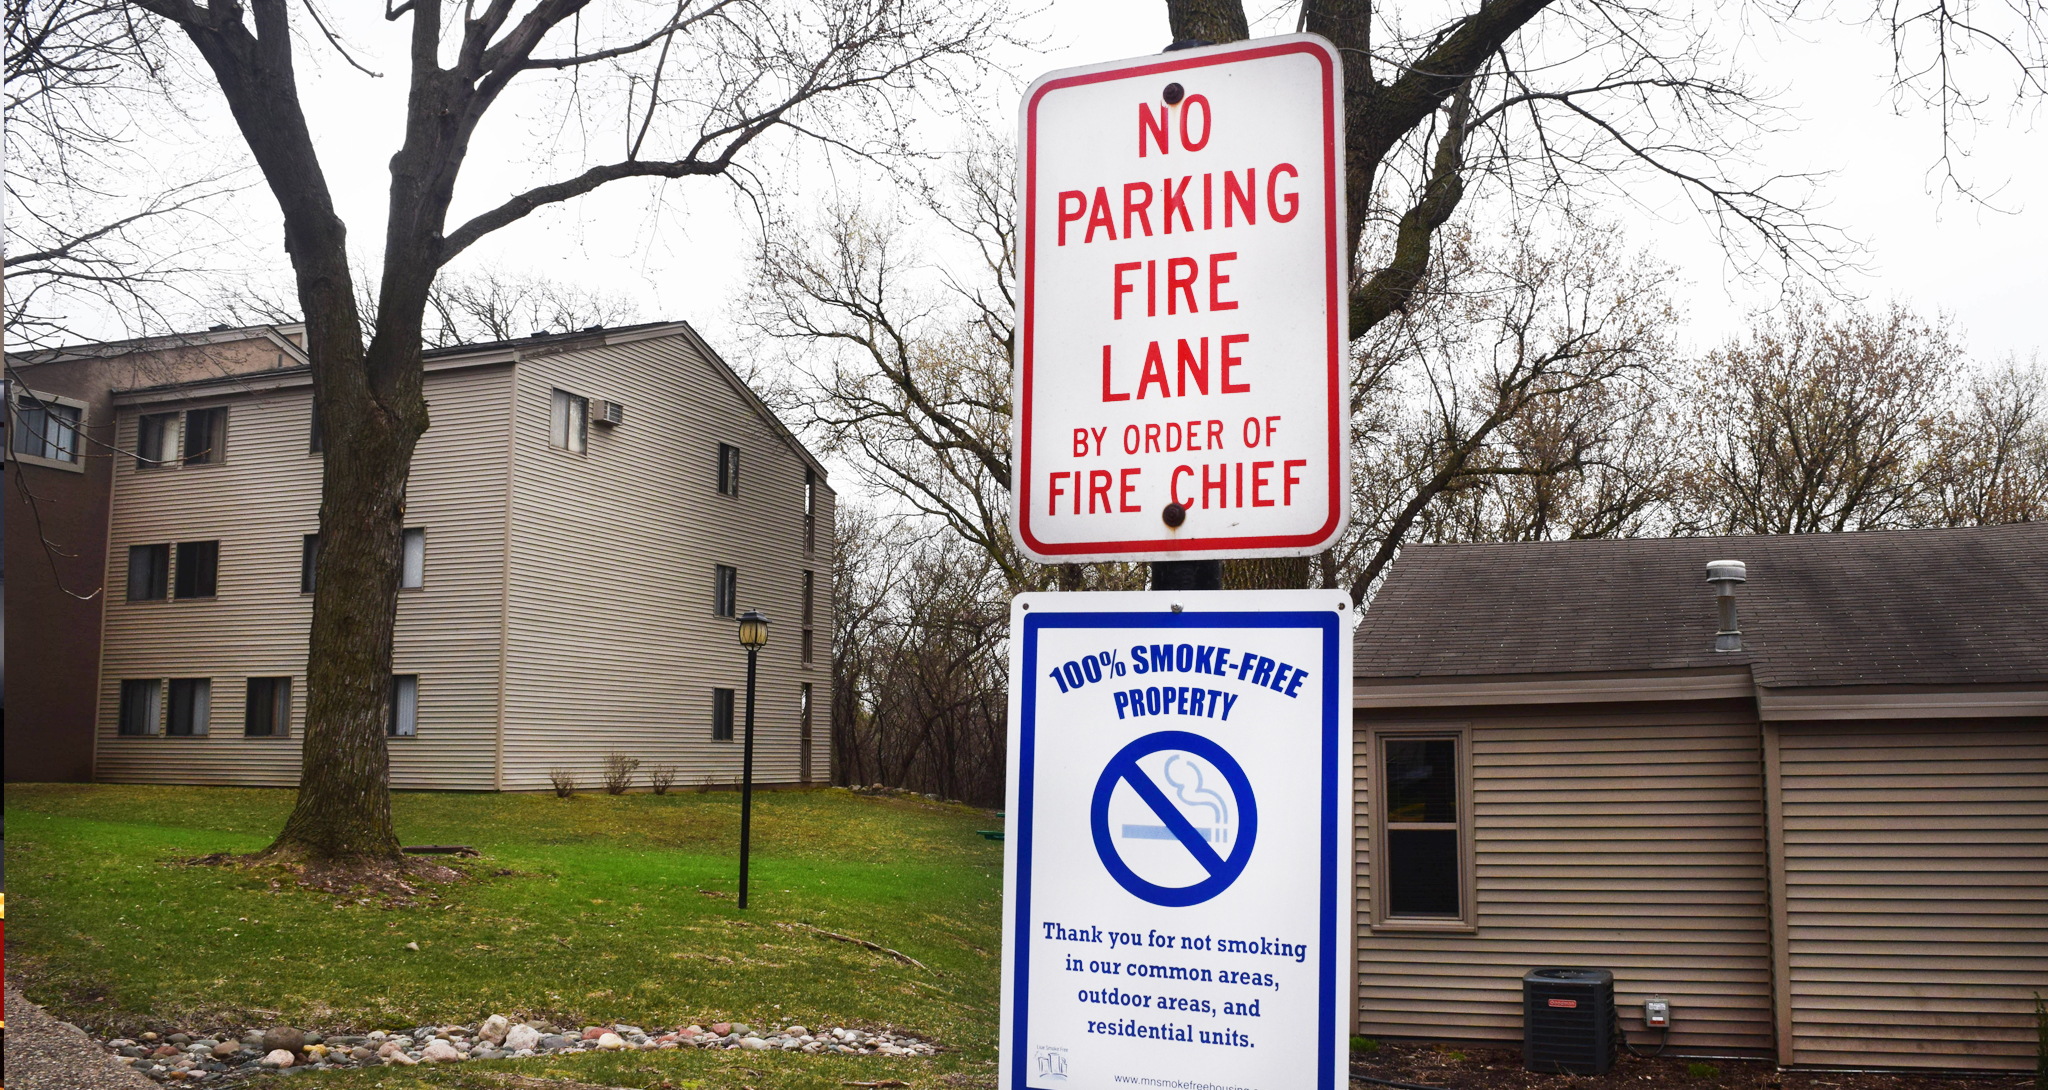 More housing complexes are choosing to go smoke free